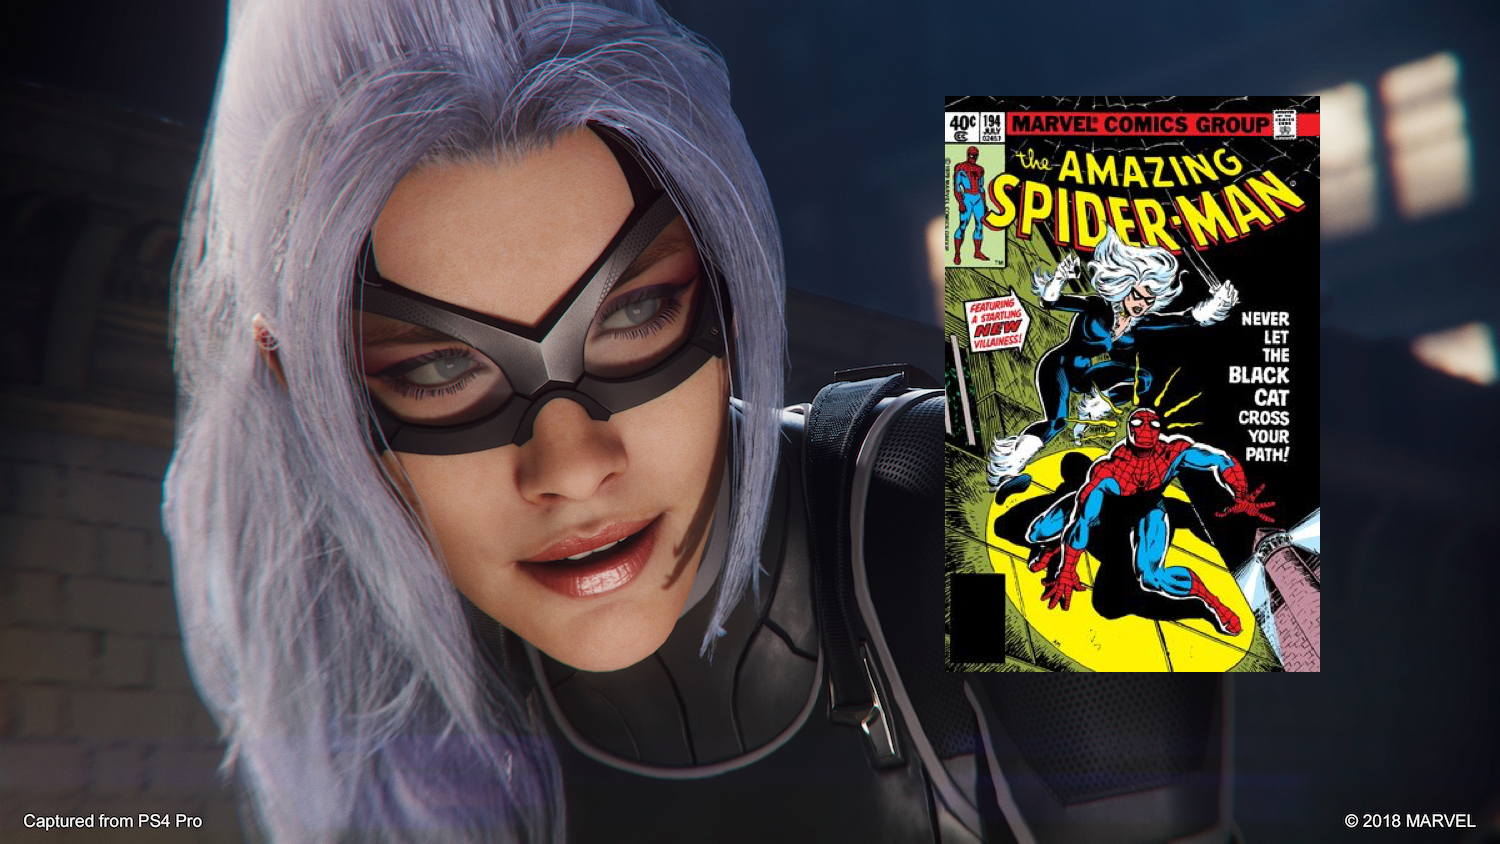 Spider Man Ps4 Dlc Update Who Is Black Cat In The Heist In The